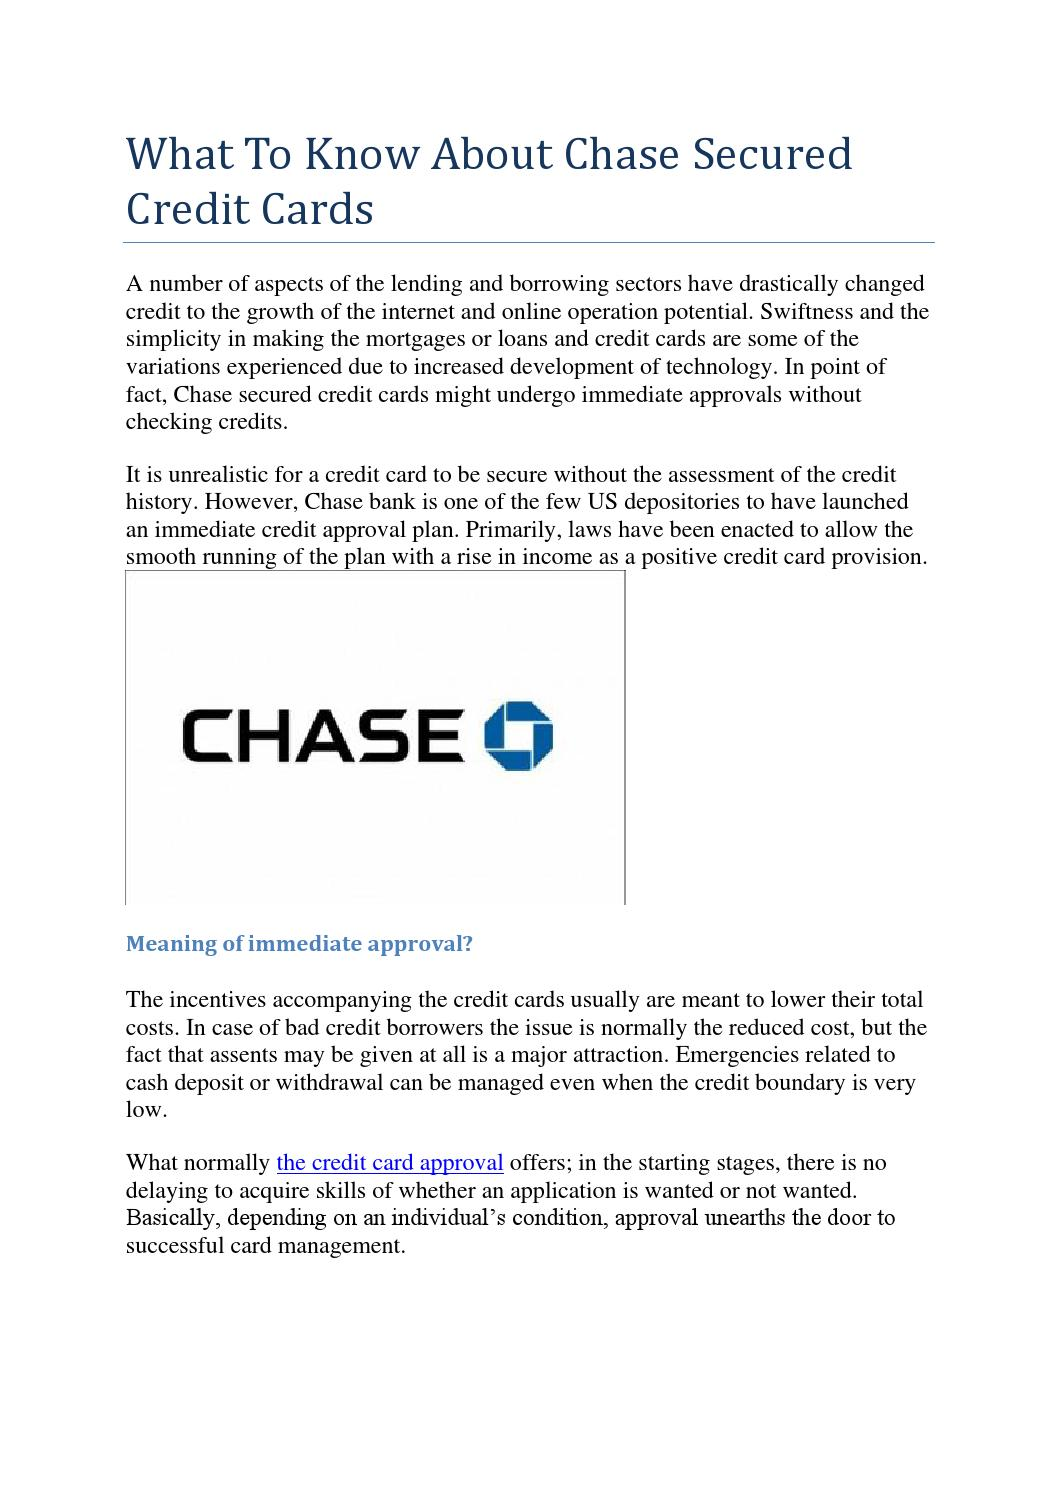 Immediate Credit Card >> What To Know About Chase Secured Credit Cards By Securedcreditcard